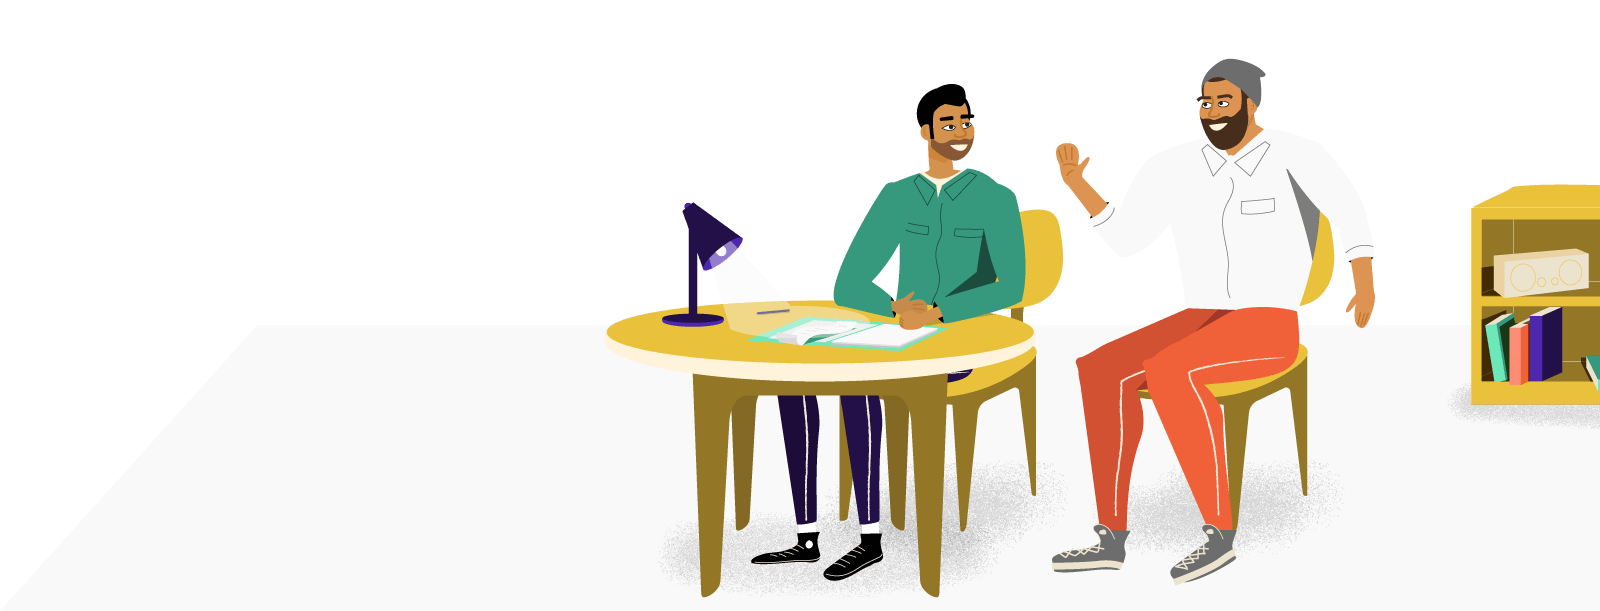 Illustration of man waving at his friend who is sitting at a desk